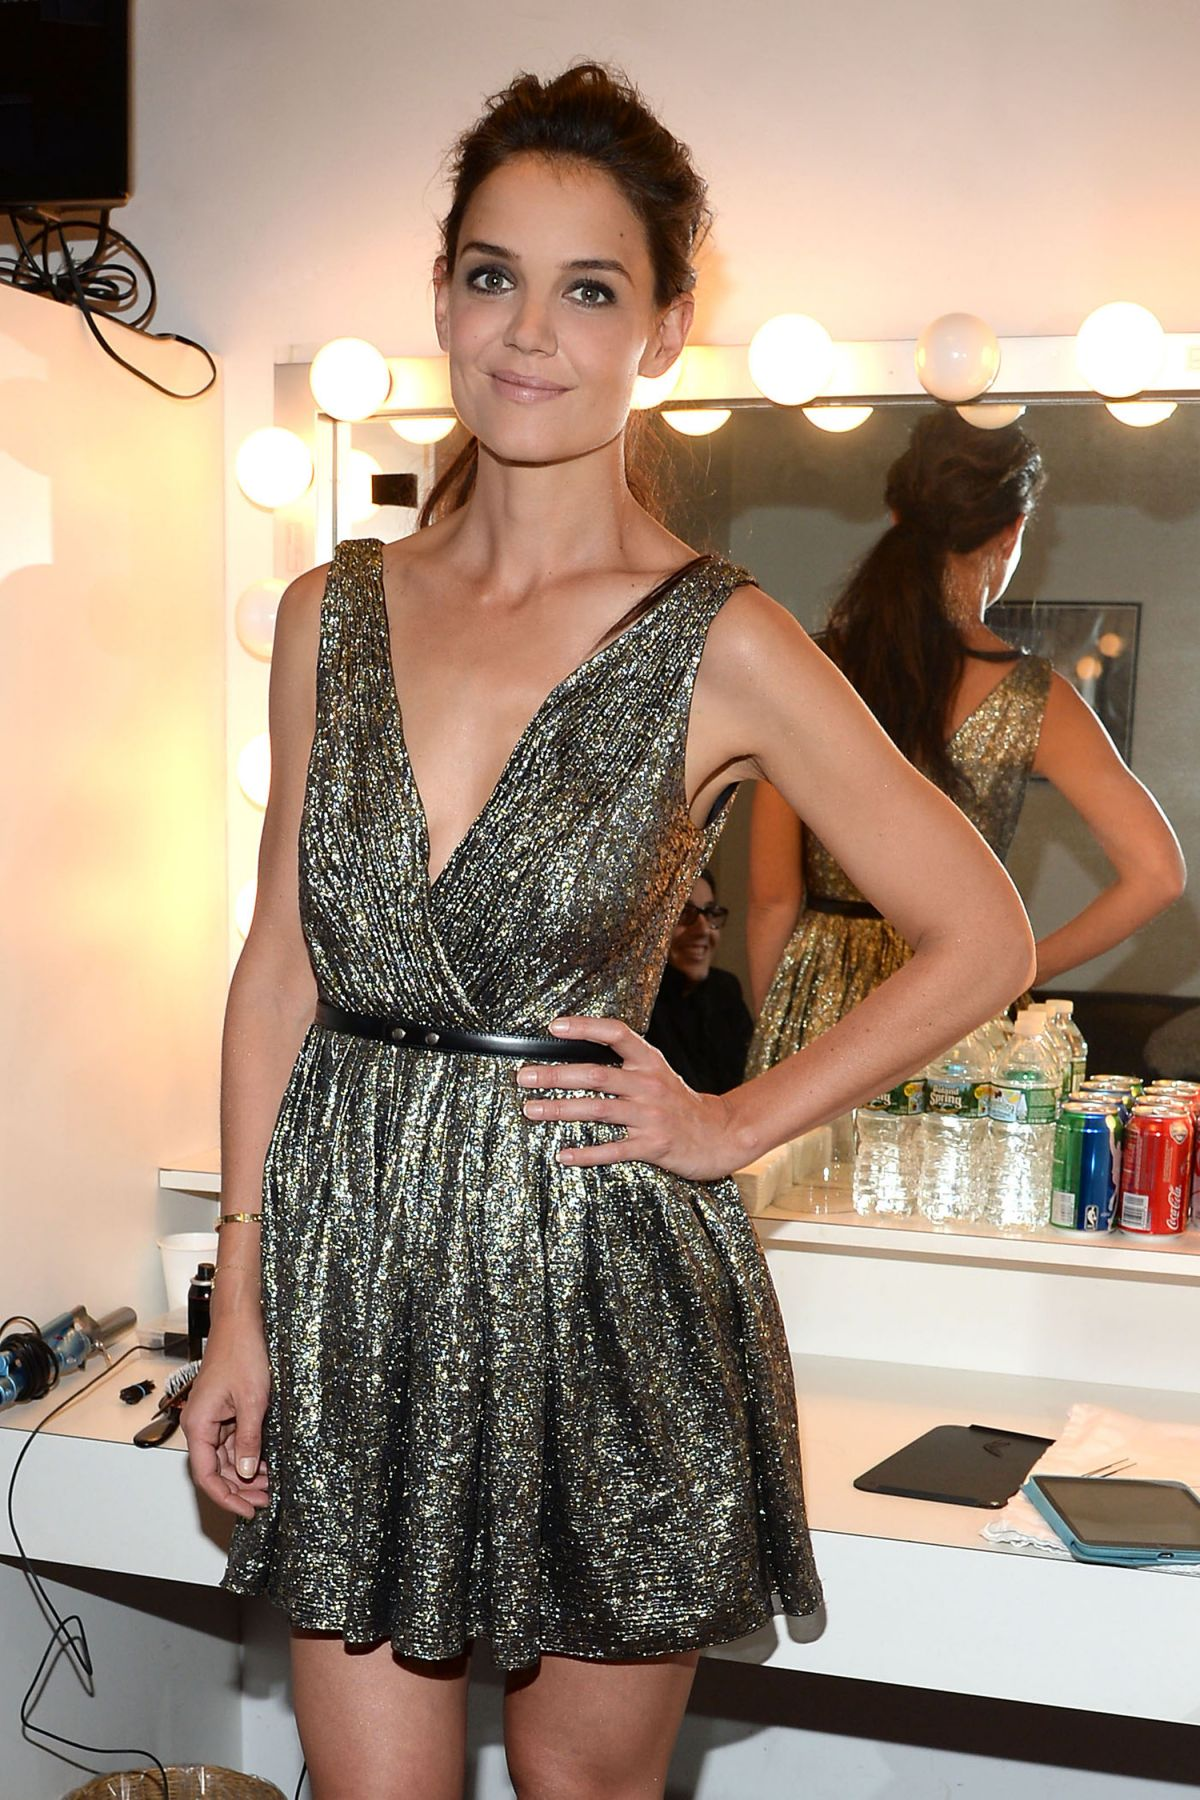 KATIE HOLMES on the Backstage of Late Show With David Letterman